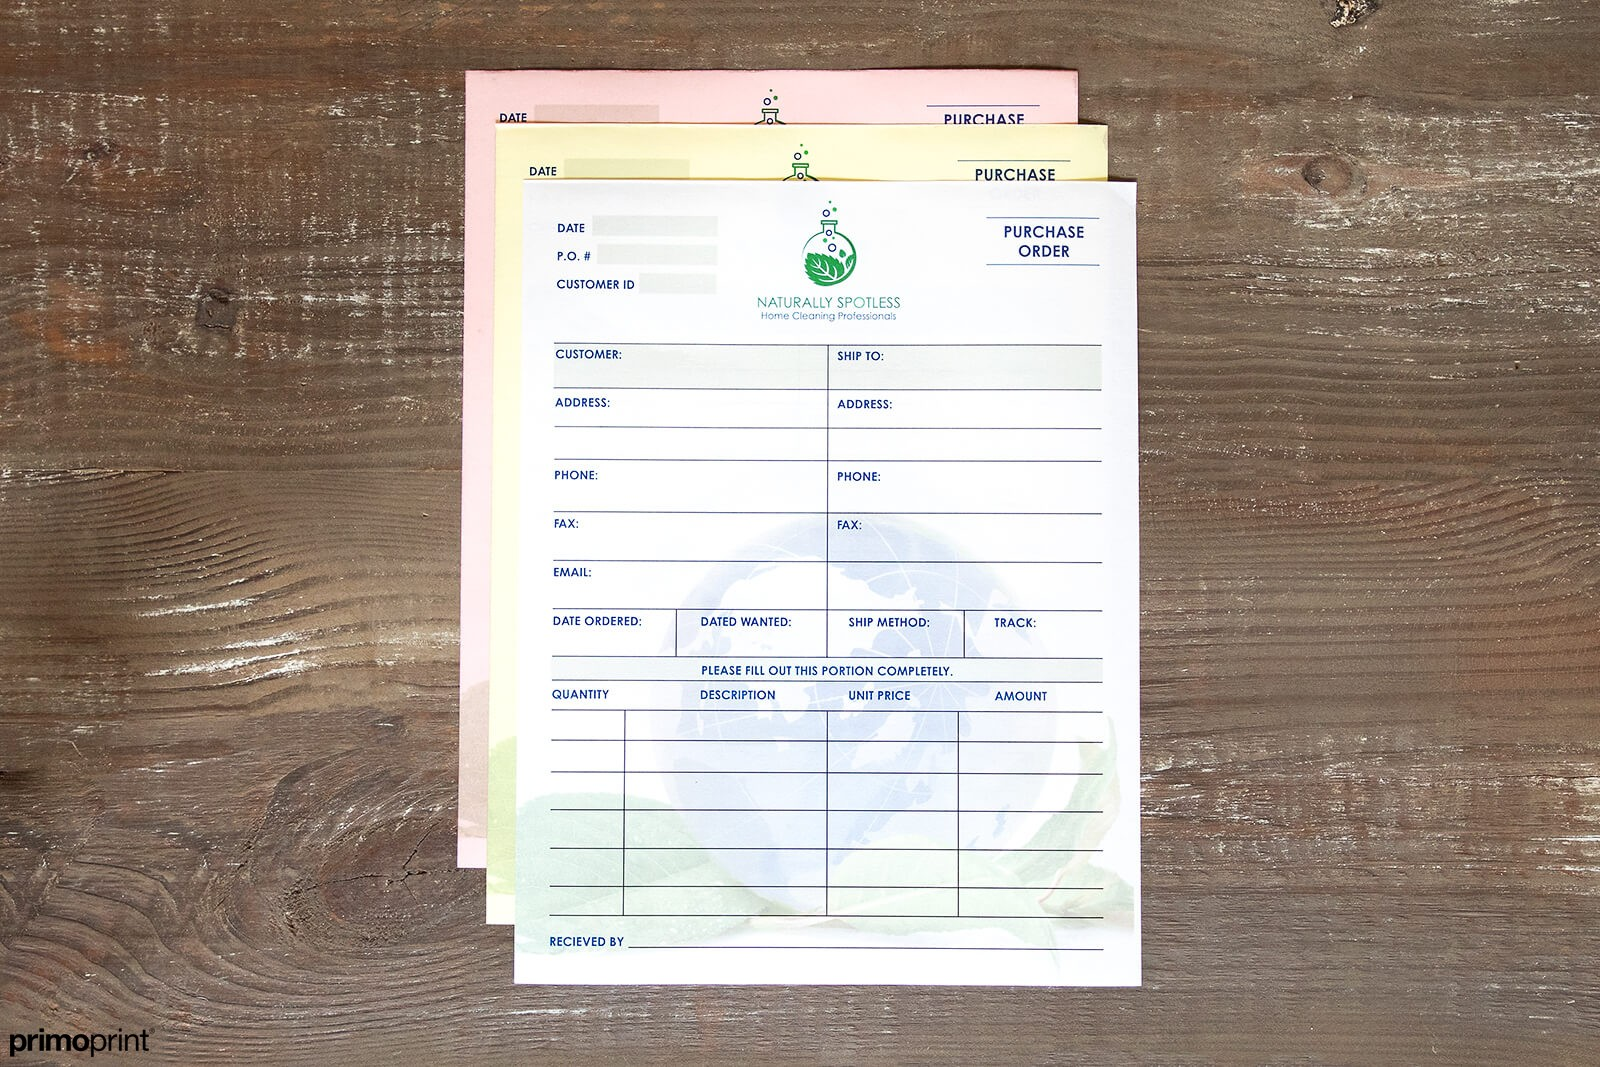 Full-color carbonless NCR form designed by Primoprint.